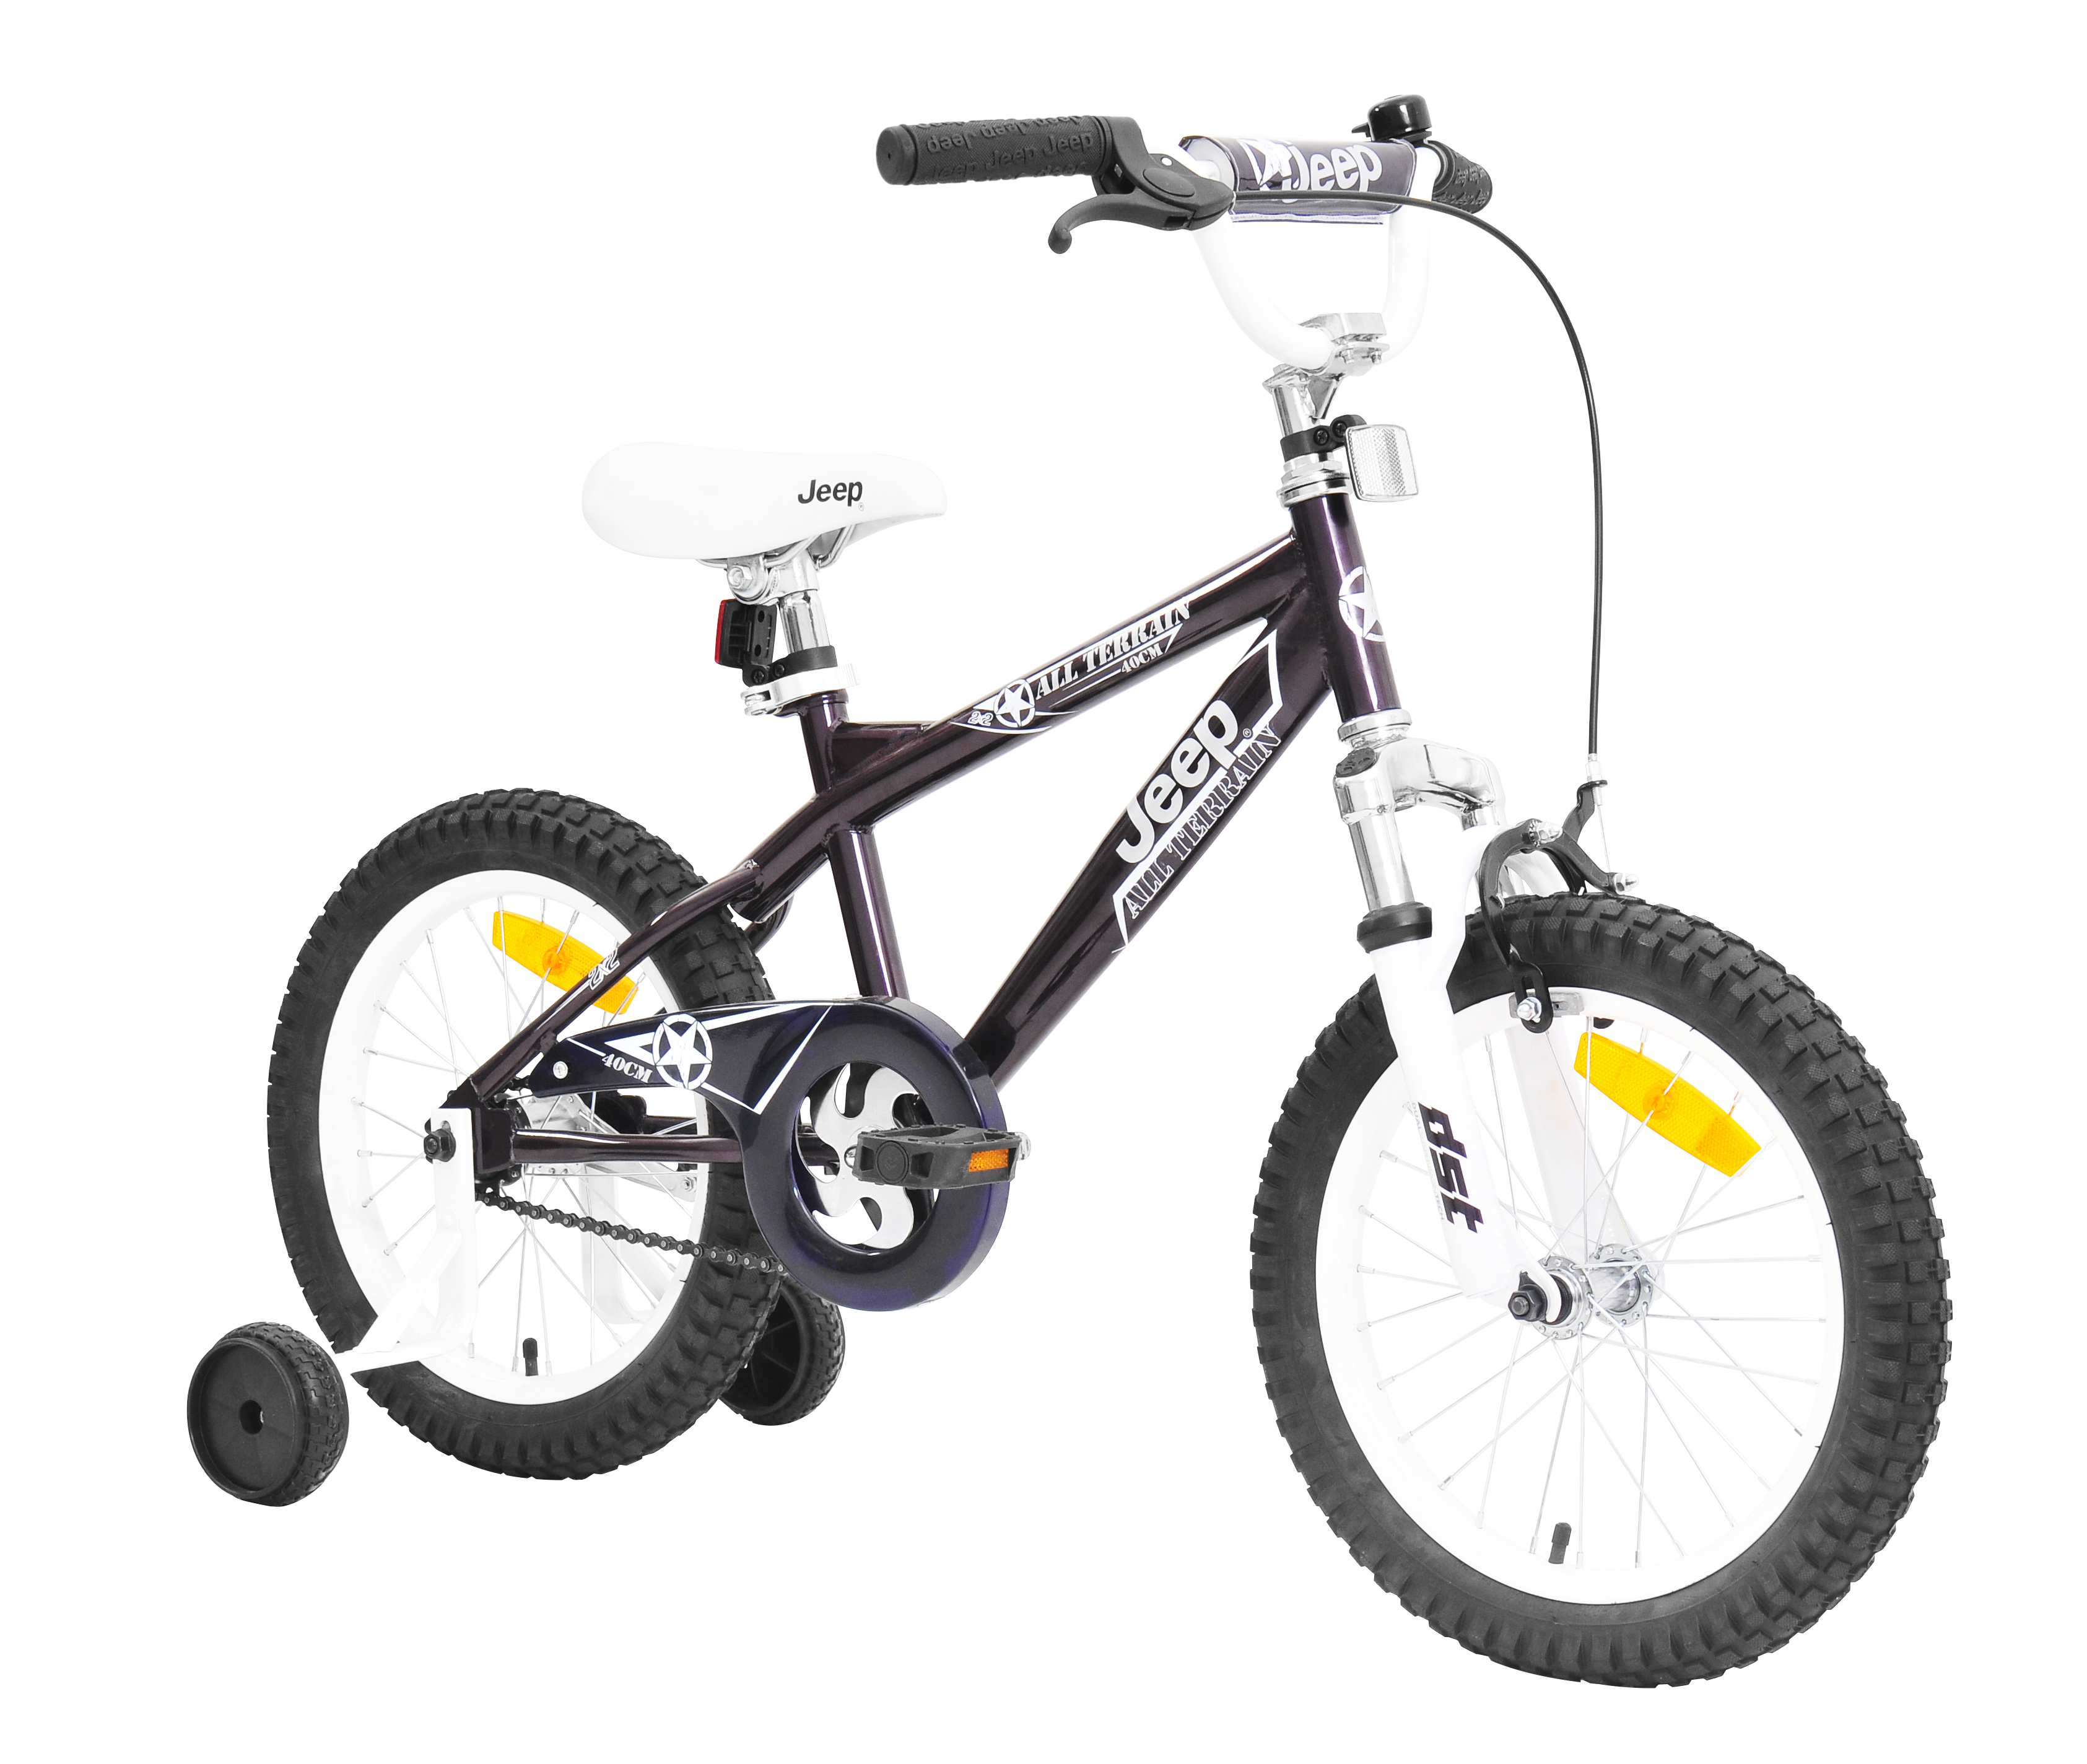 Jeep Bicycles Bicycle Modifications